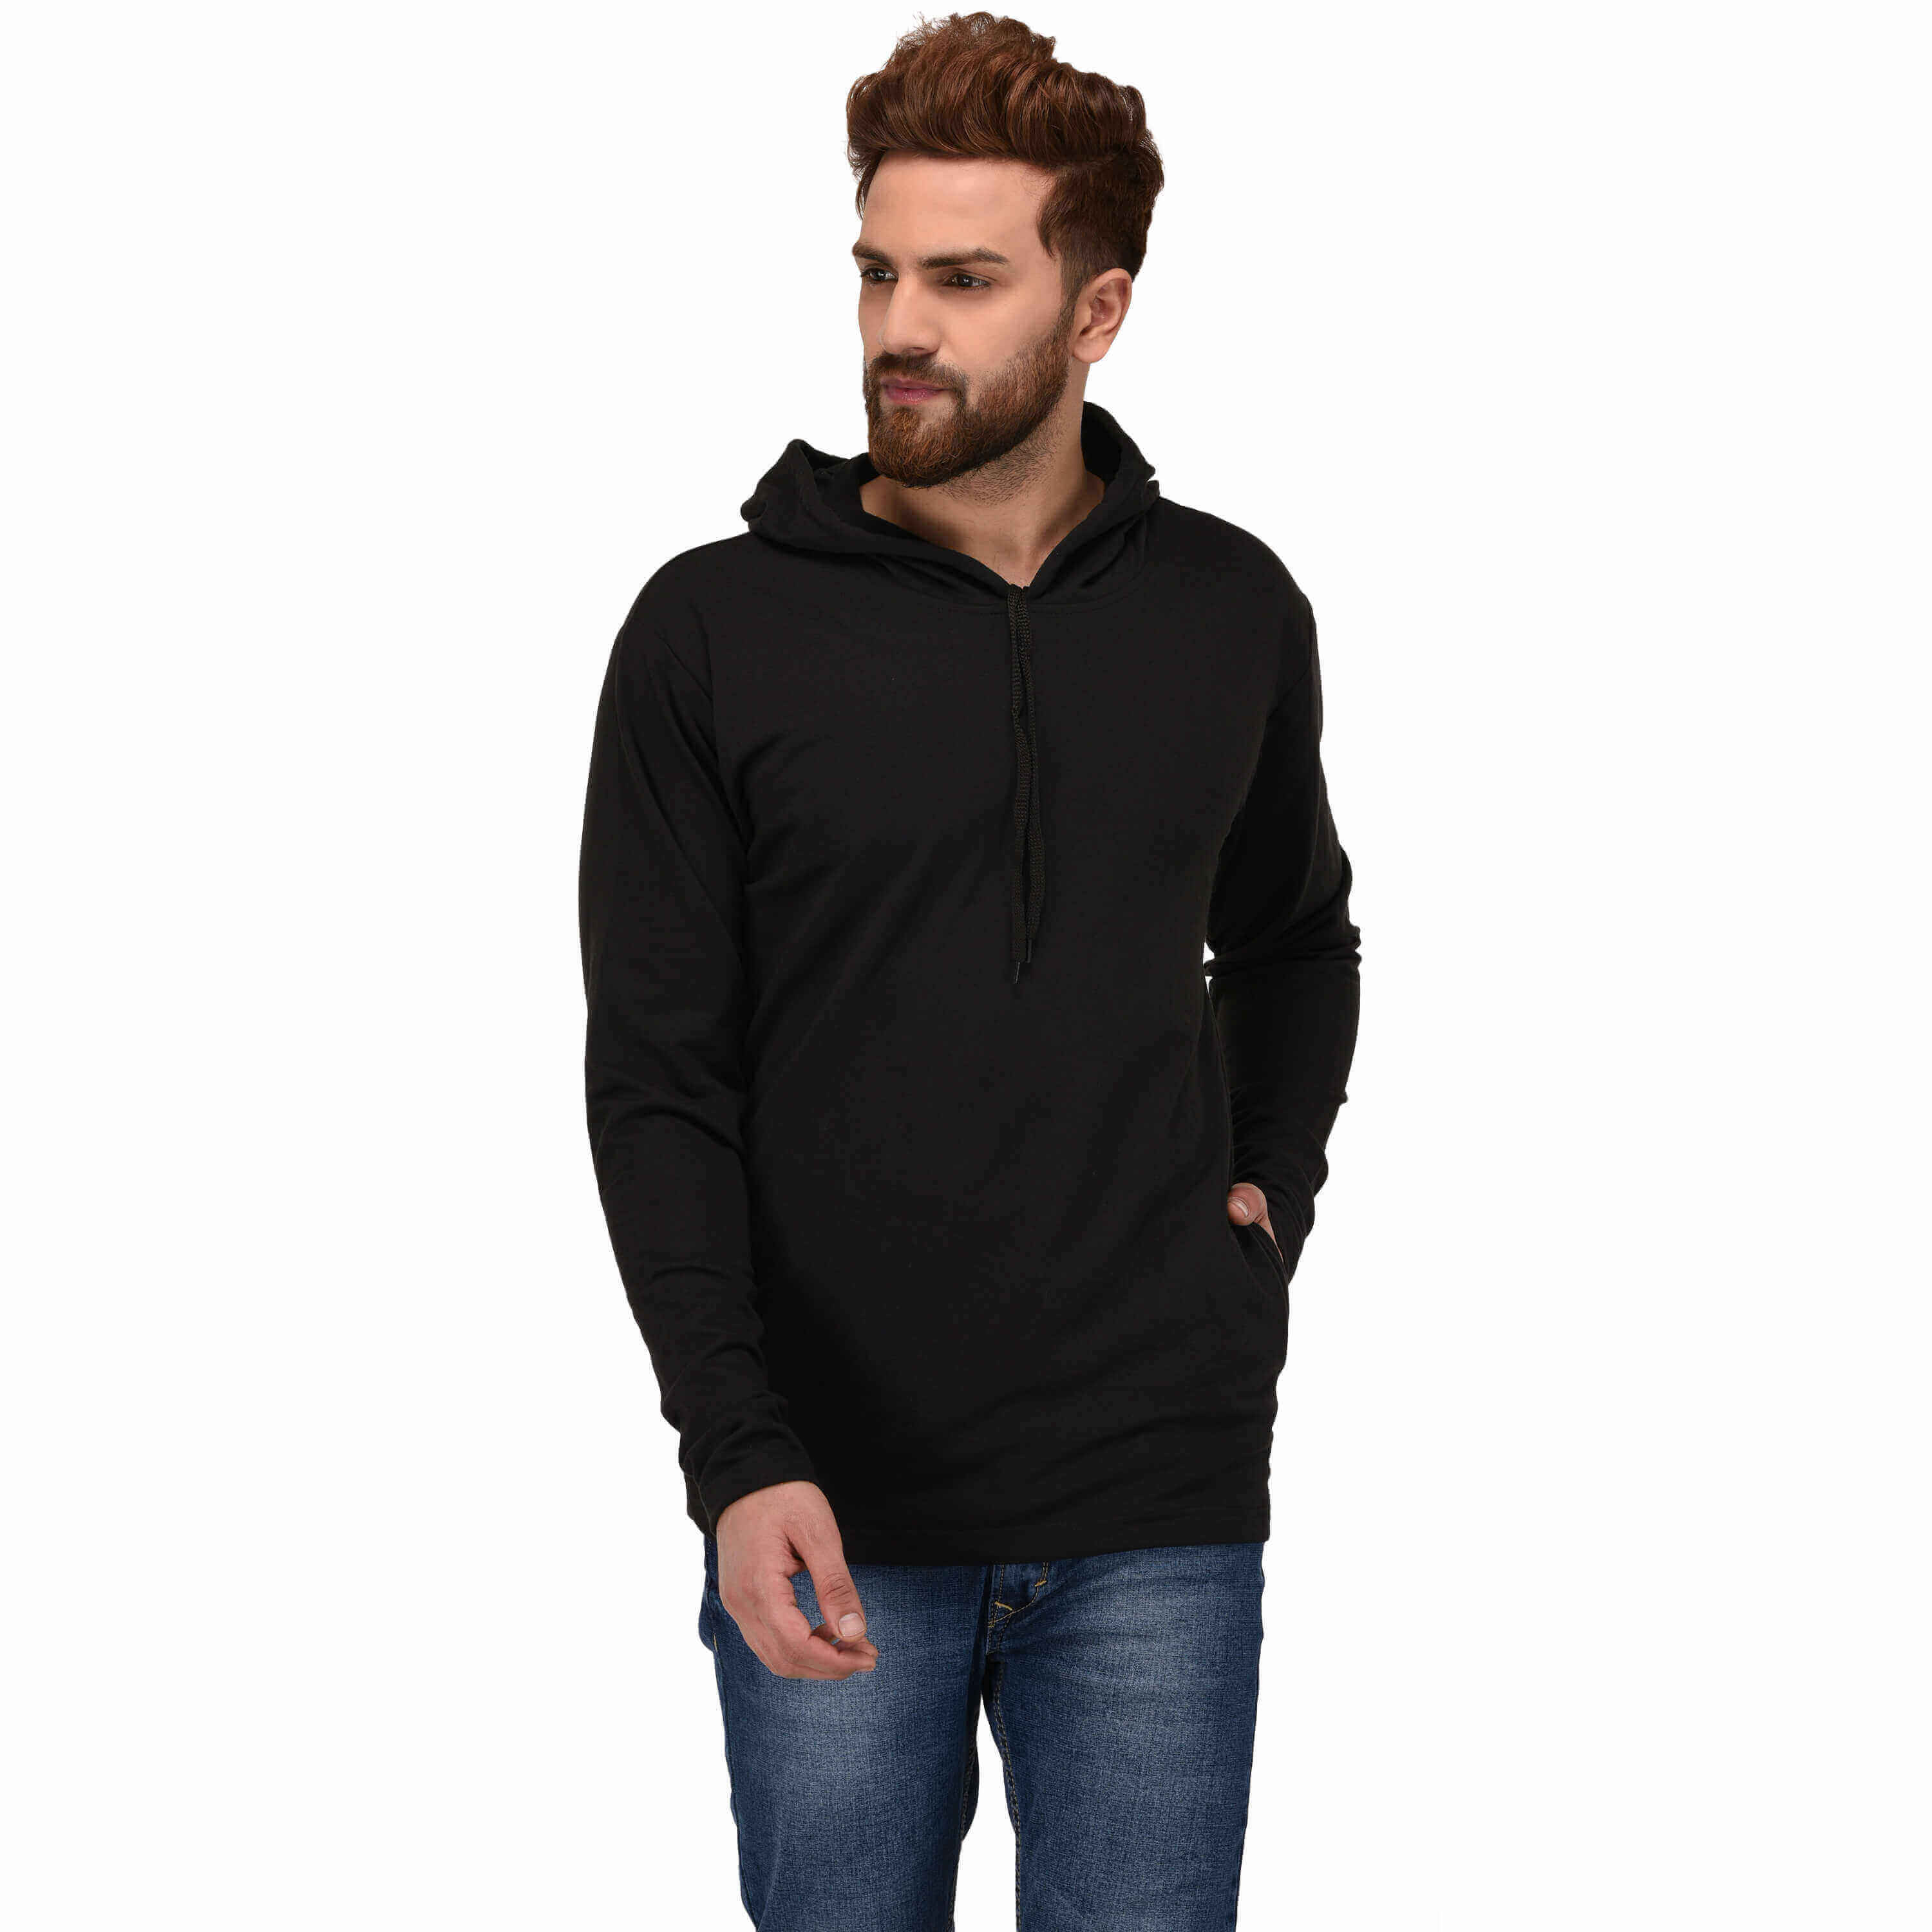 Sports Hoodies Manufacturers in Puerto-rico